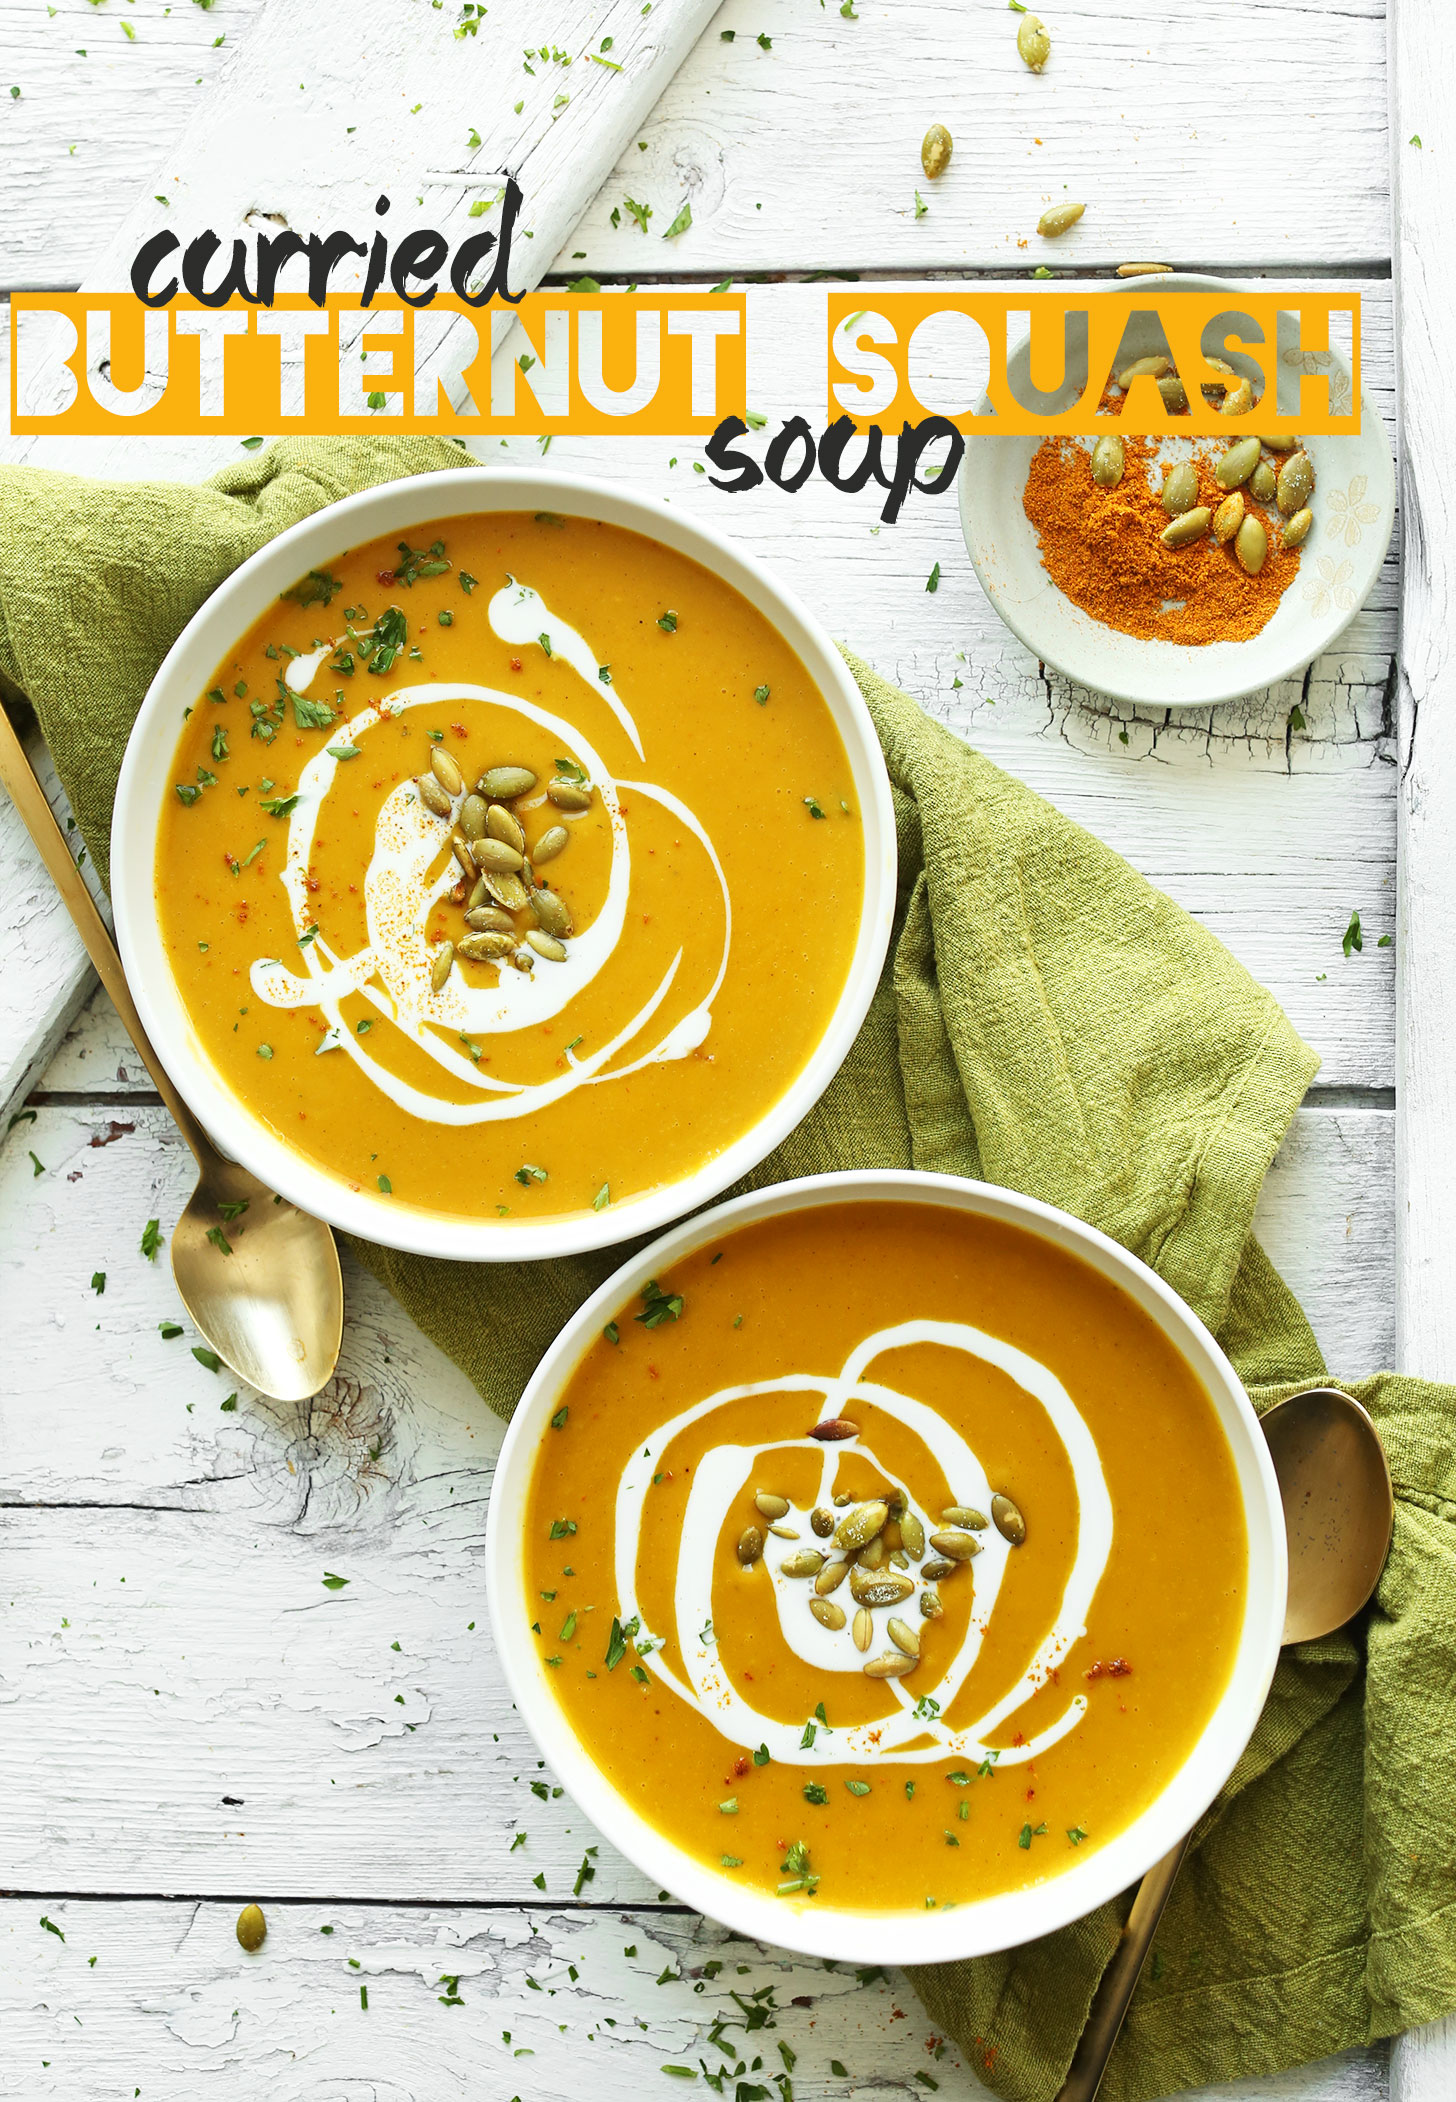 AMAZING 30-Minute Curried Butternut Squash Soup! Creamy, flavorful, and perfect for fall! #vegan #glutenfree #soup #squash #fall #recipe #minimalistbaker